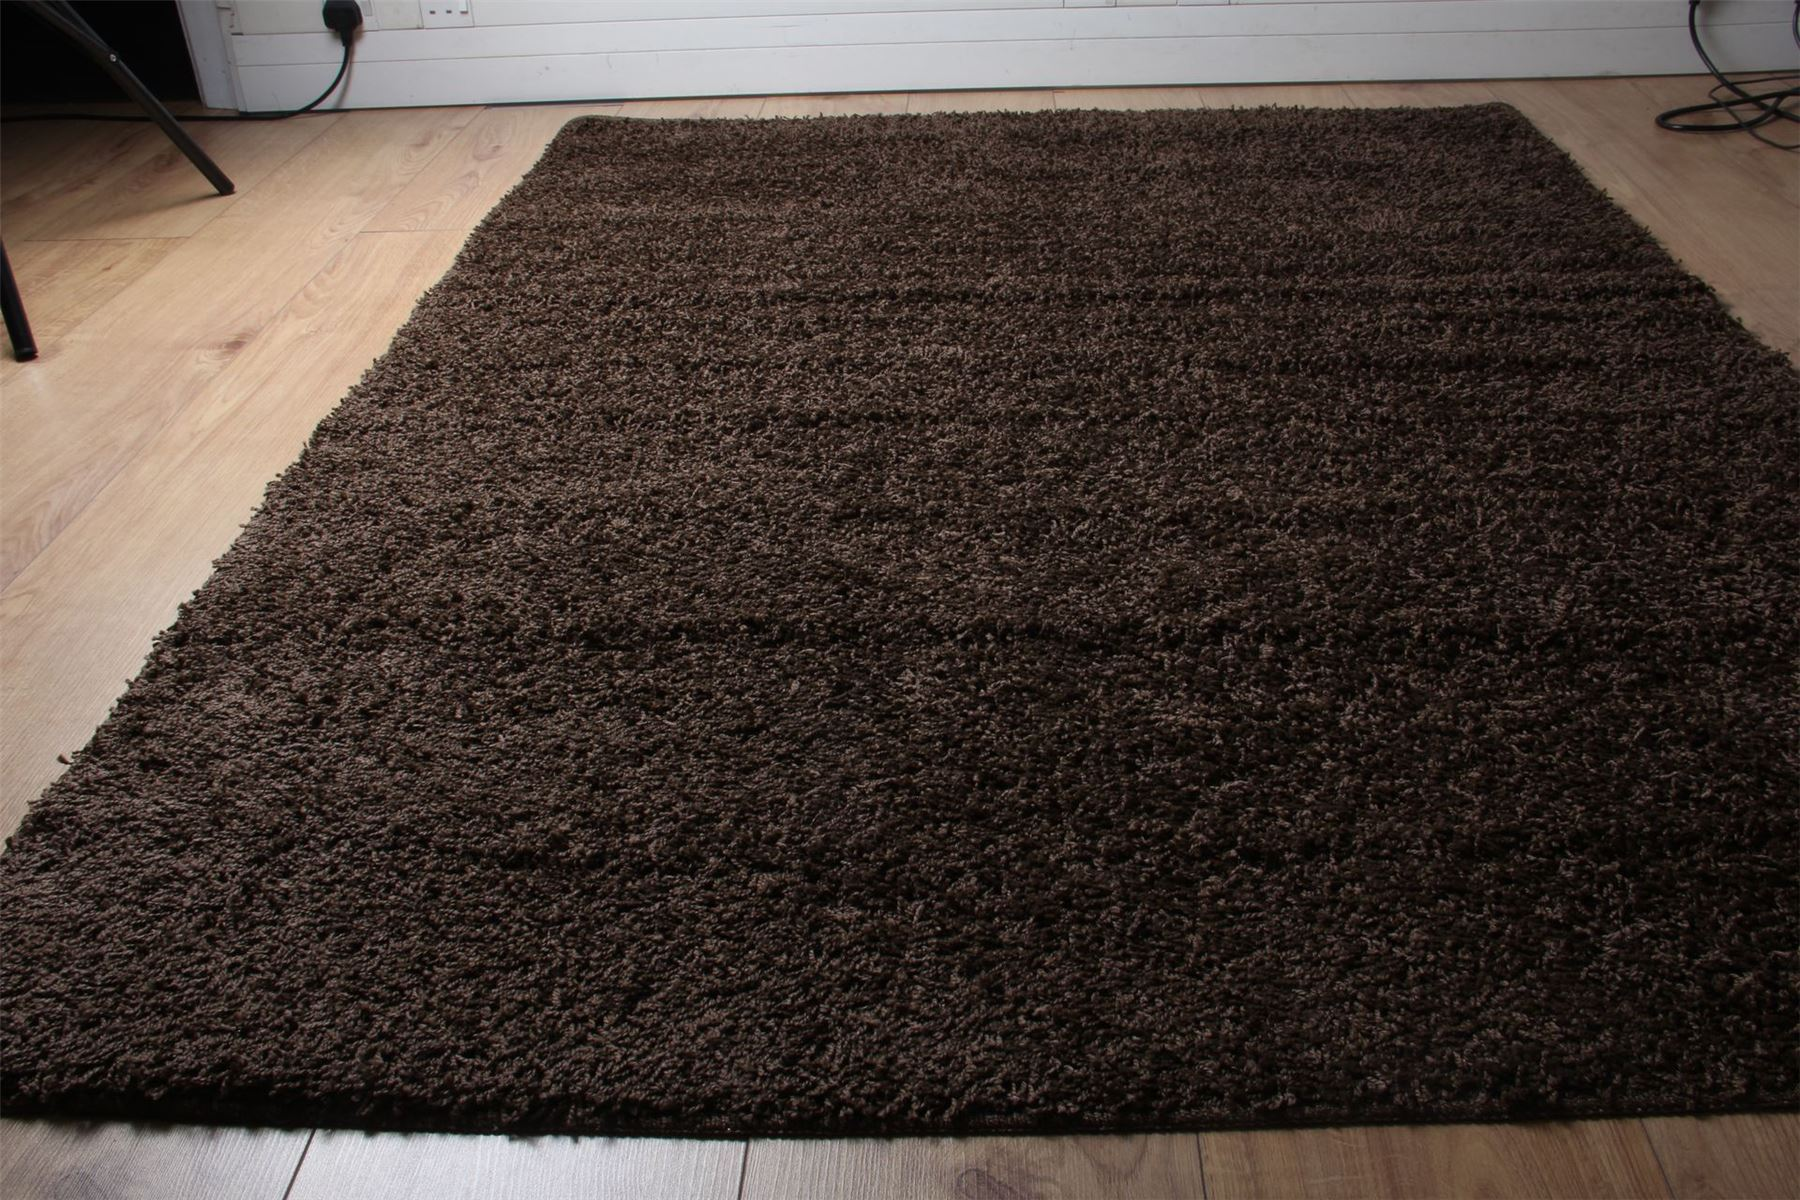 High Pile Carpet Oxford Shag Rug Tall High Quality Soft Easy Wash Thick